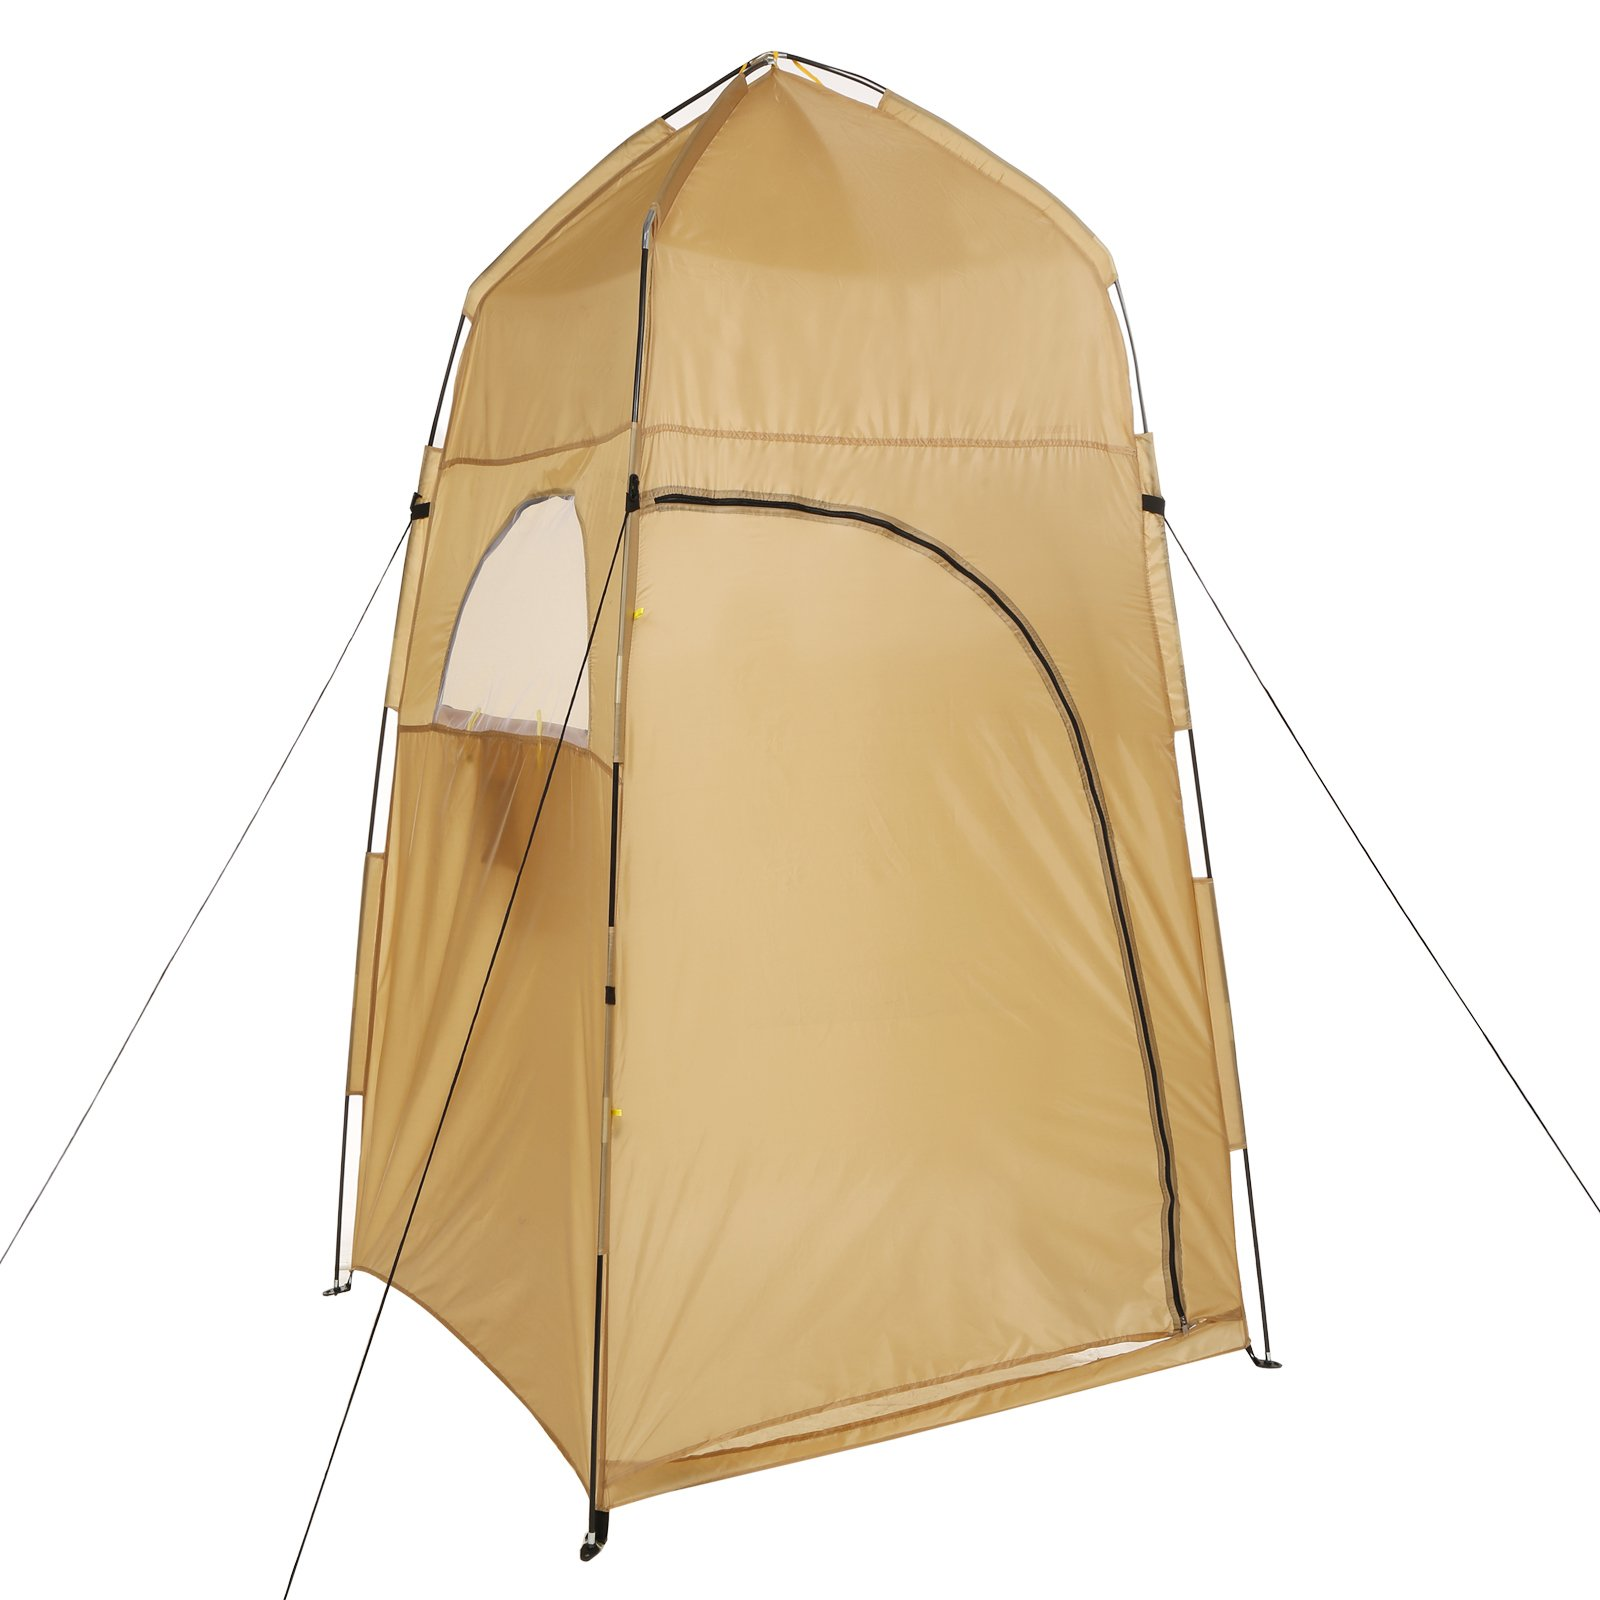 Etuoji New Privacy Tent Waterproof 1-2 Person Shelters Outdoor Shower Bathing Movable Dressing Zipper Locker [US Stock]